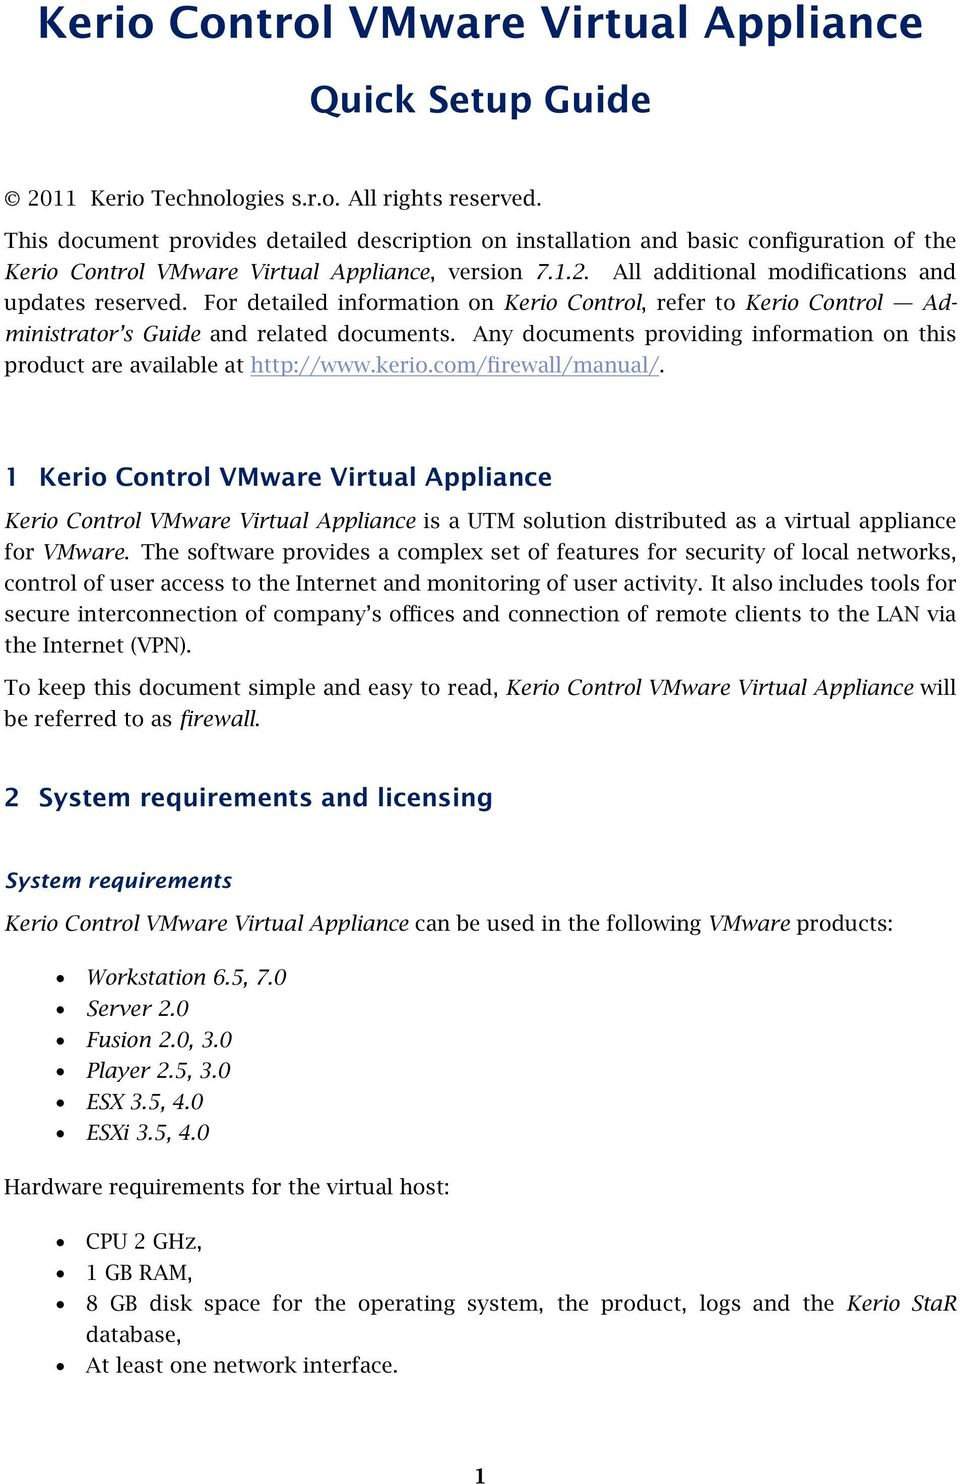 For detailed information on Kerio Control, refer to Kerio Control Administrator s Guide and related documents. Any documents providing information on this product are available at http://www.kerio.